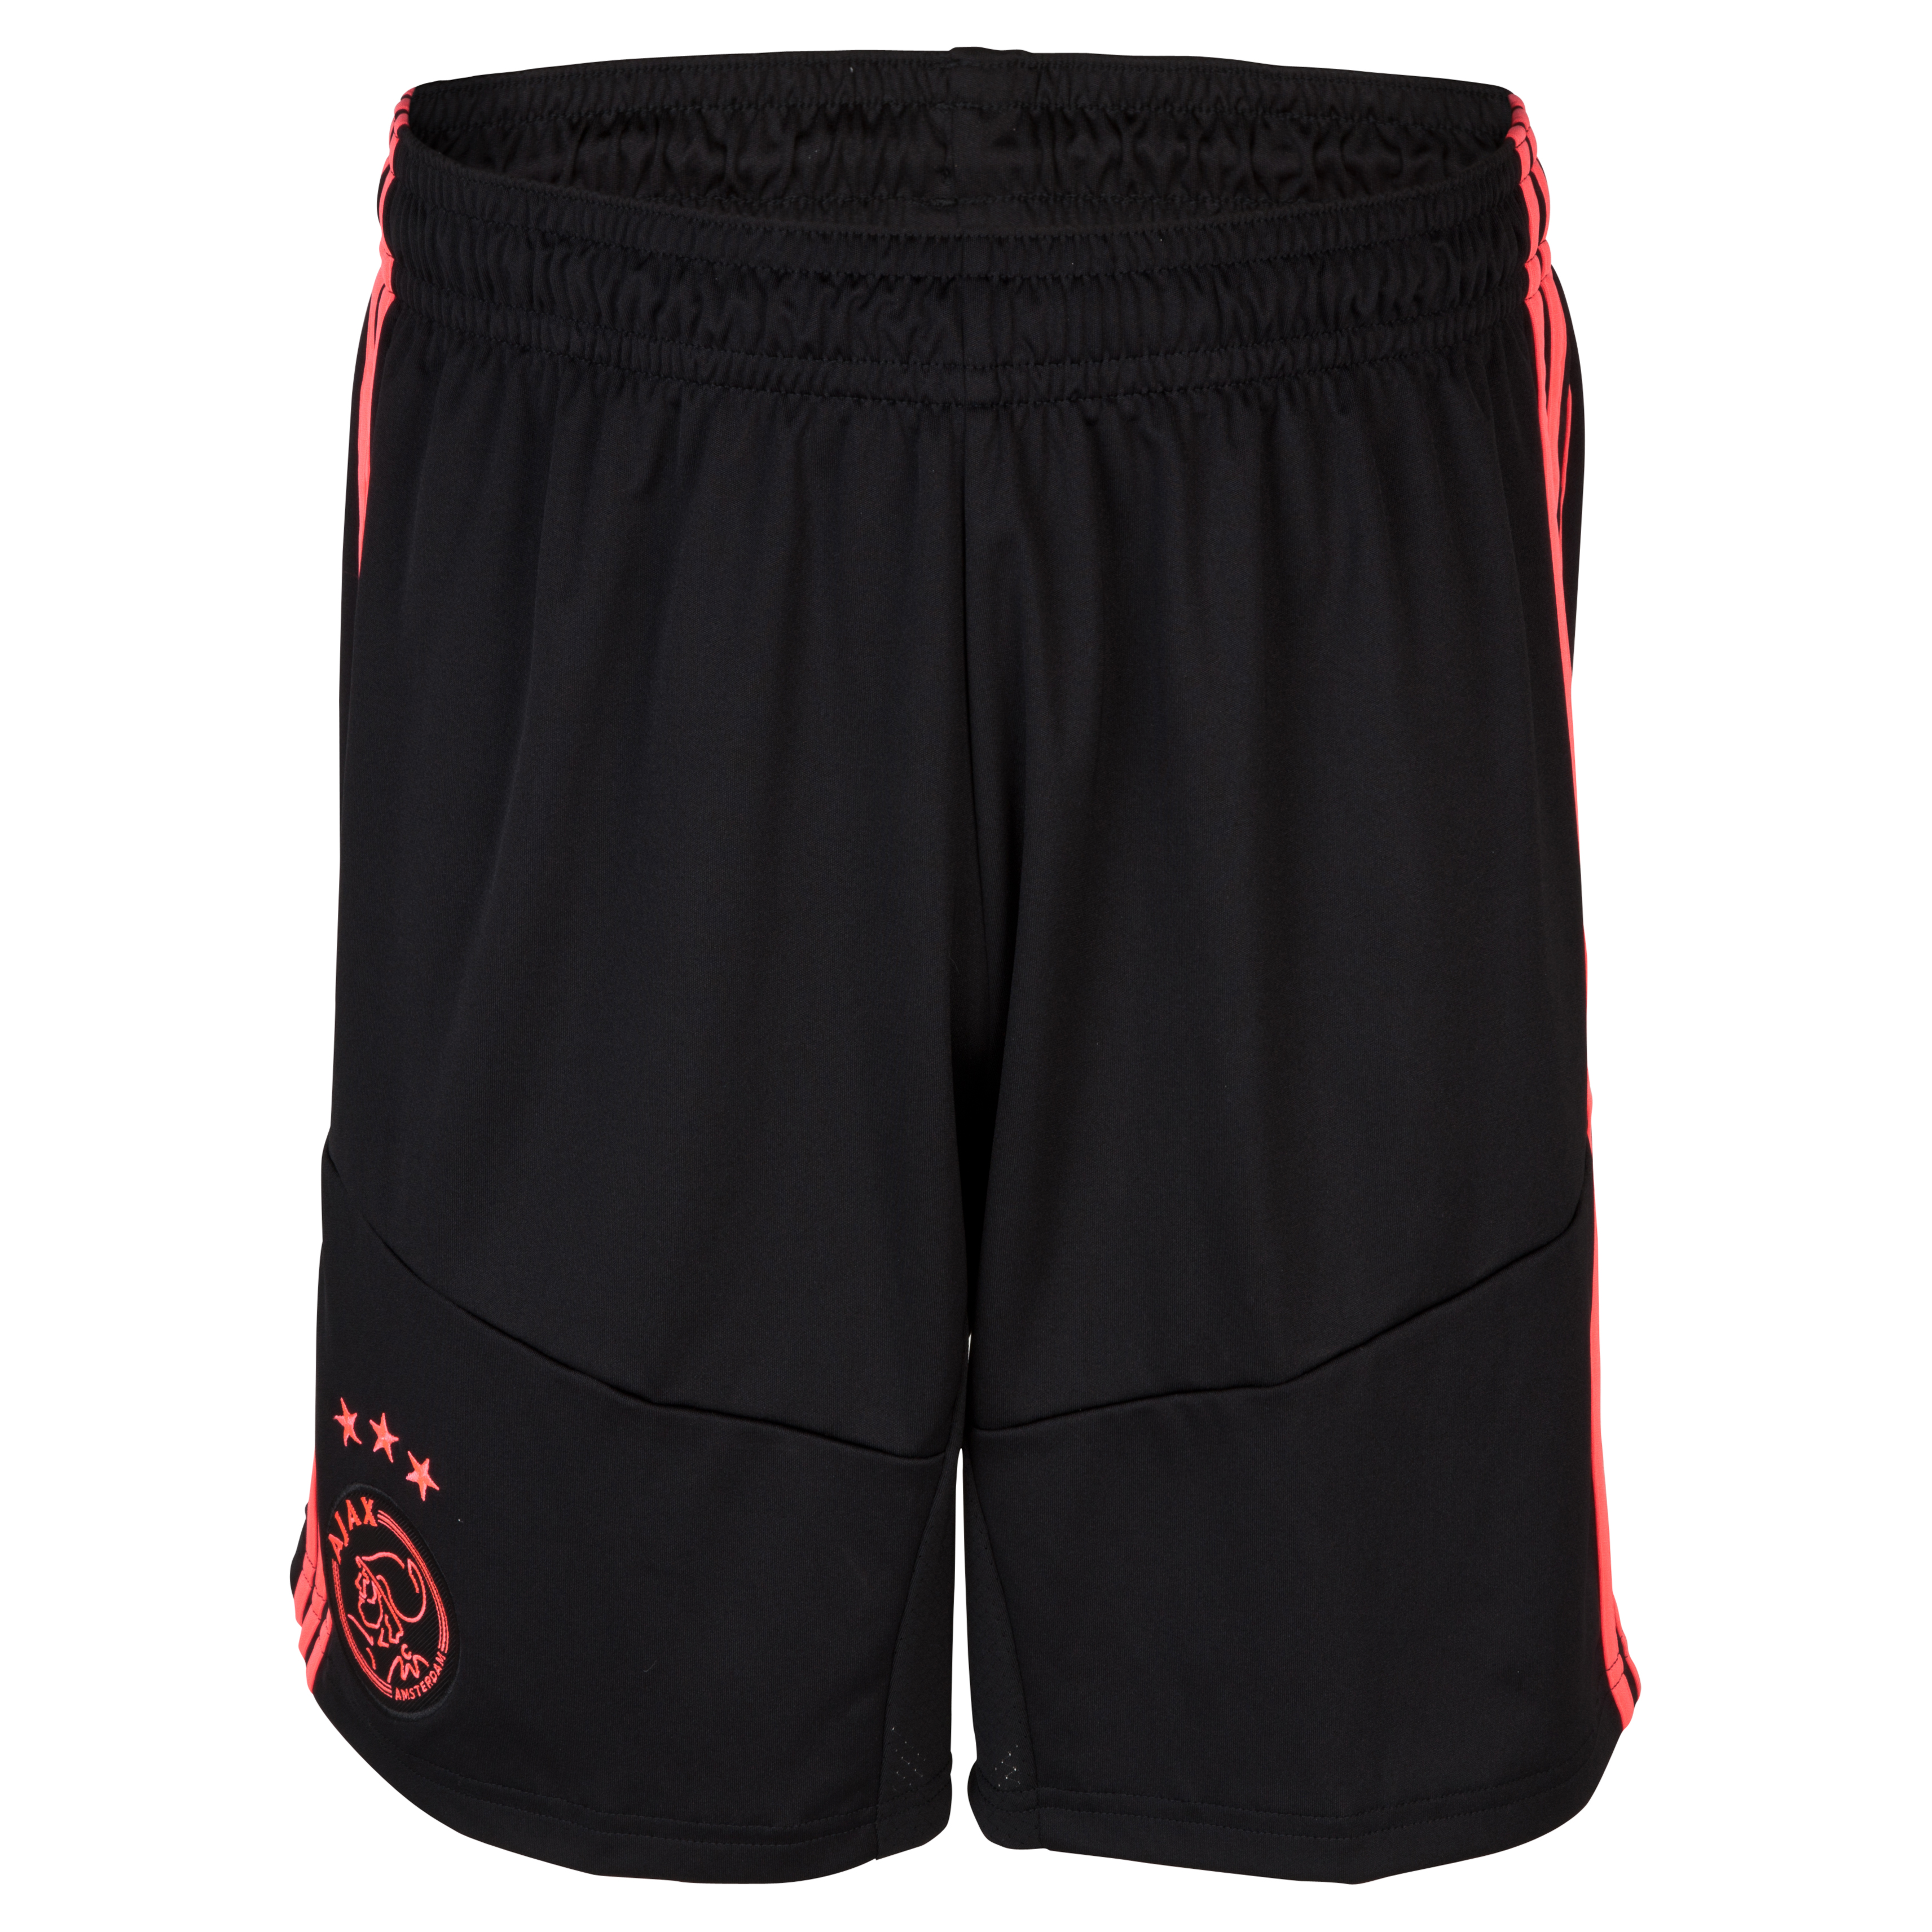 Ajax Away Shorts 2013/14